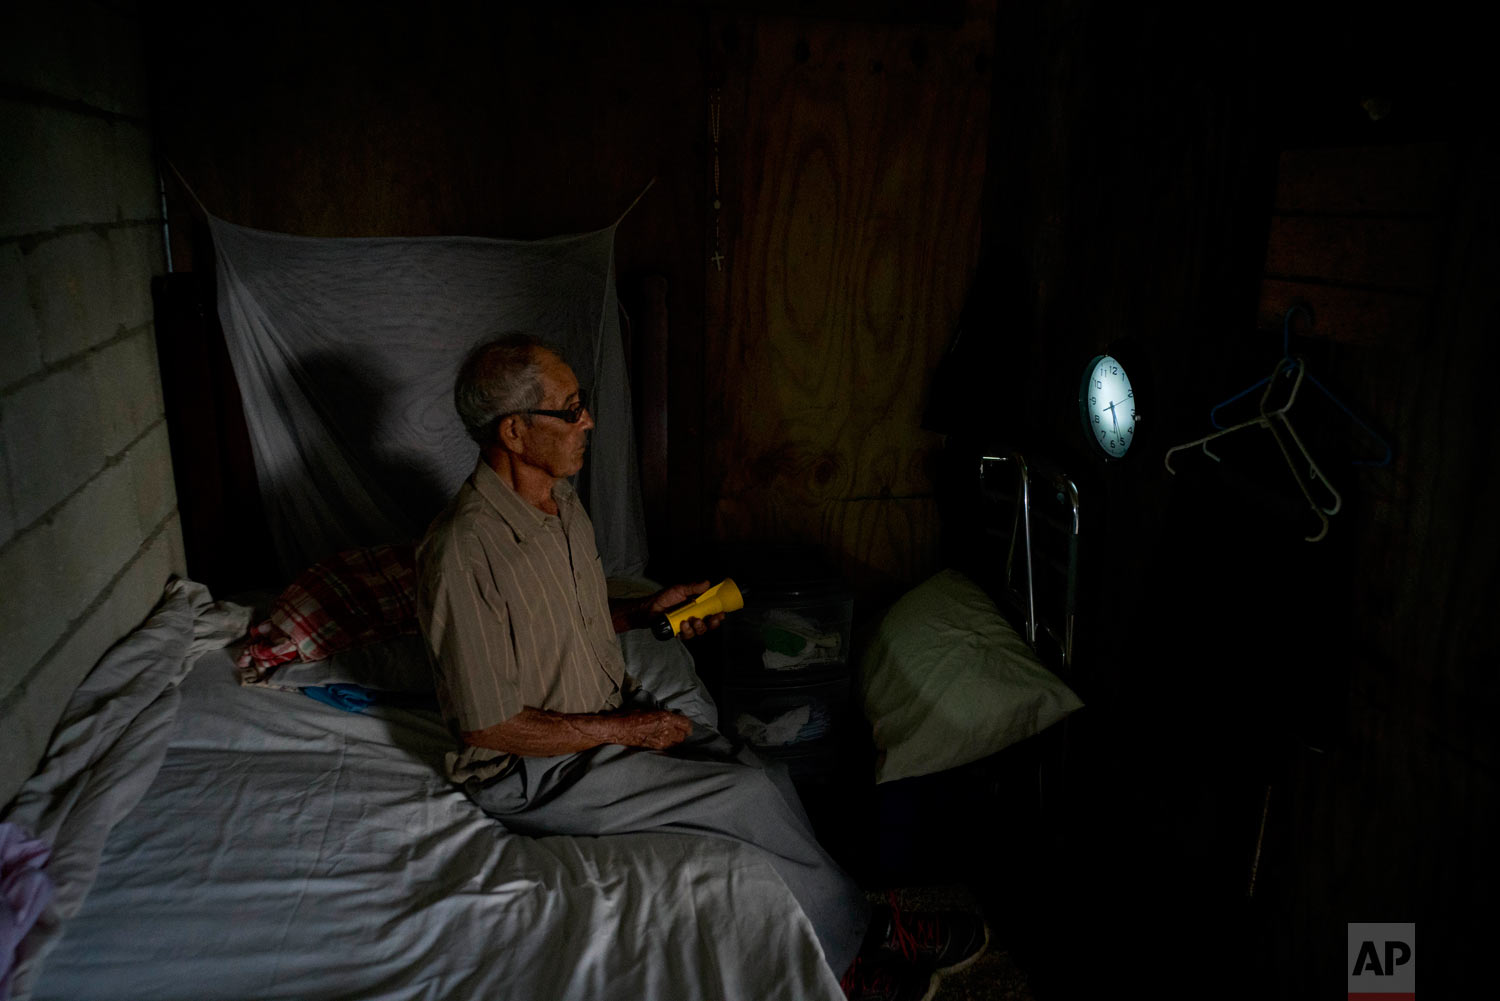 Ramon Alicea Burgos uses a flashlight to read the time on the clock on the wall of a temporary wooden room he built under the structure of his partially re-built home. Sept. 8, 2018. (AP Photo/Ramon Espinosa)